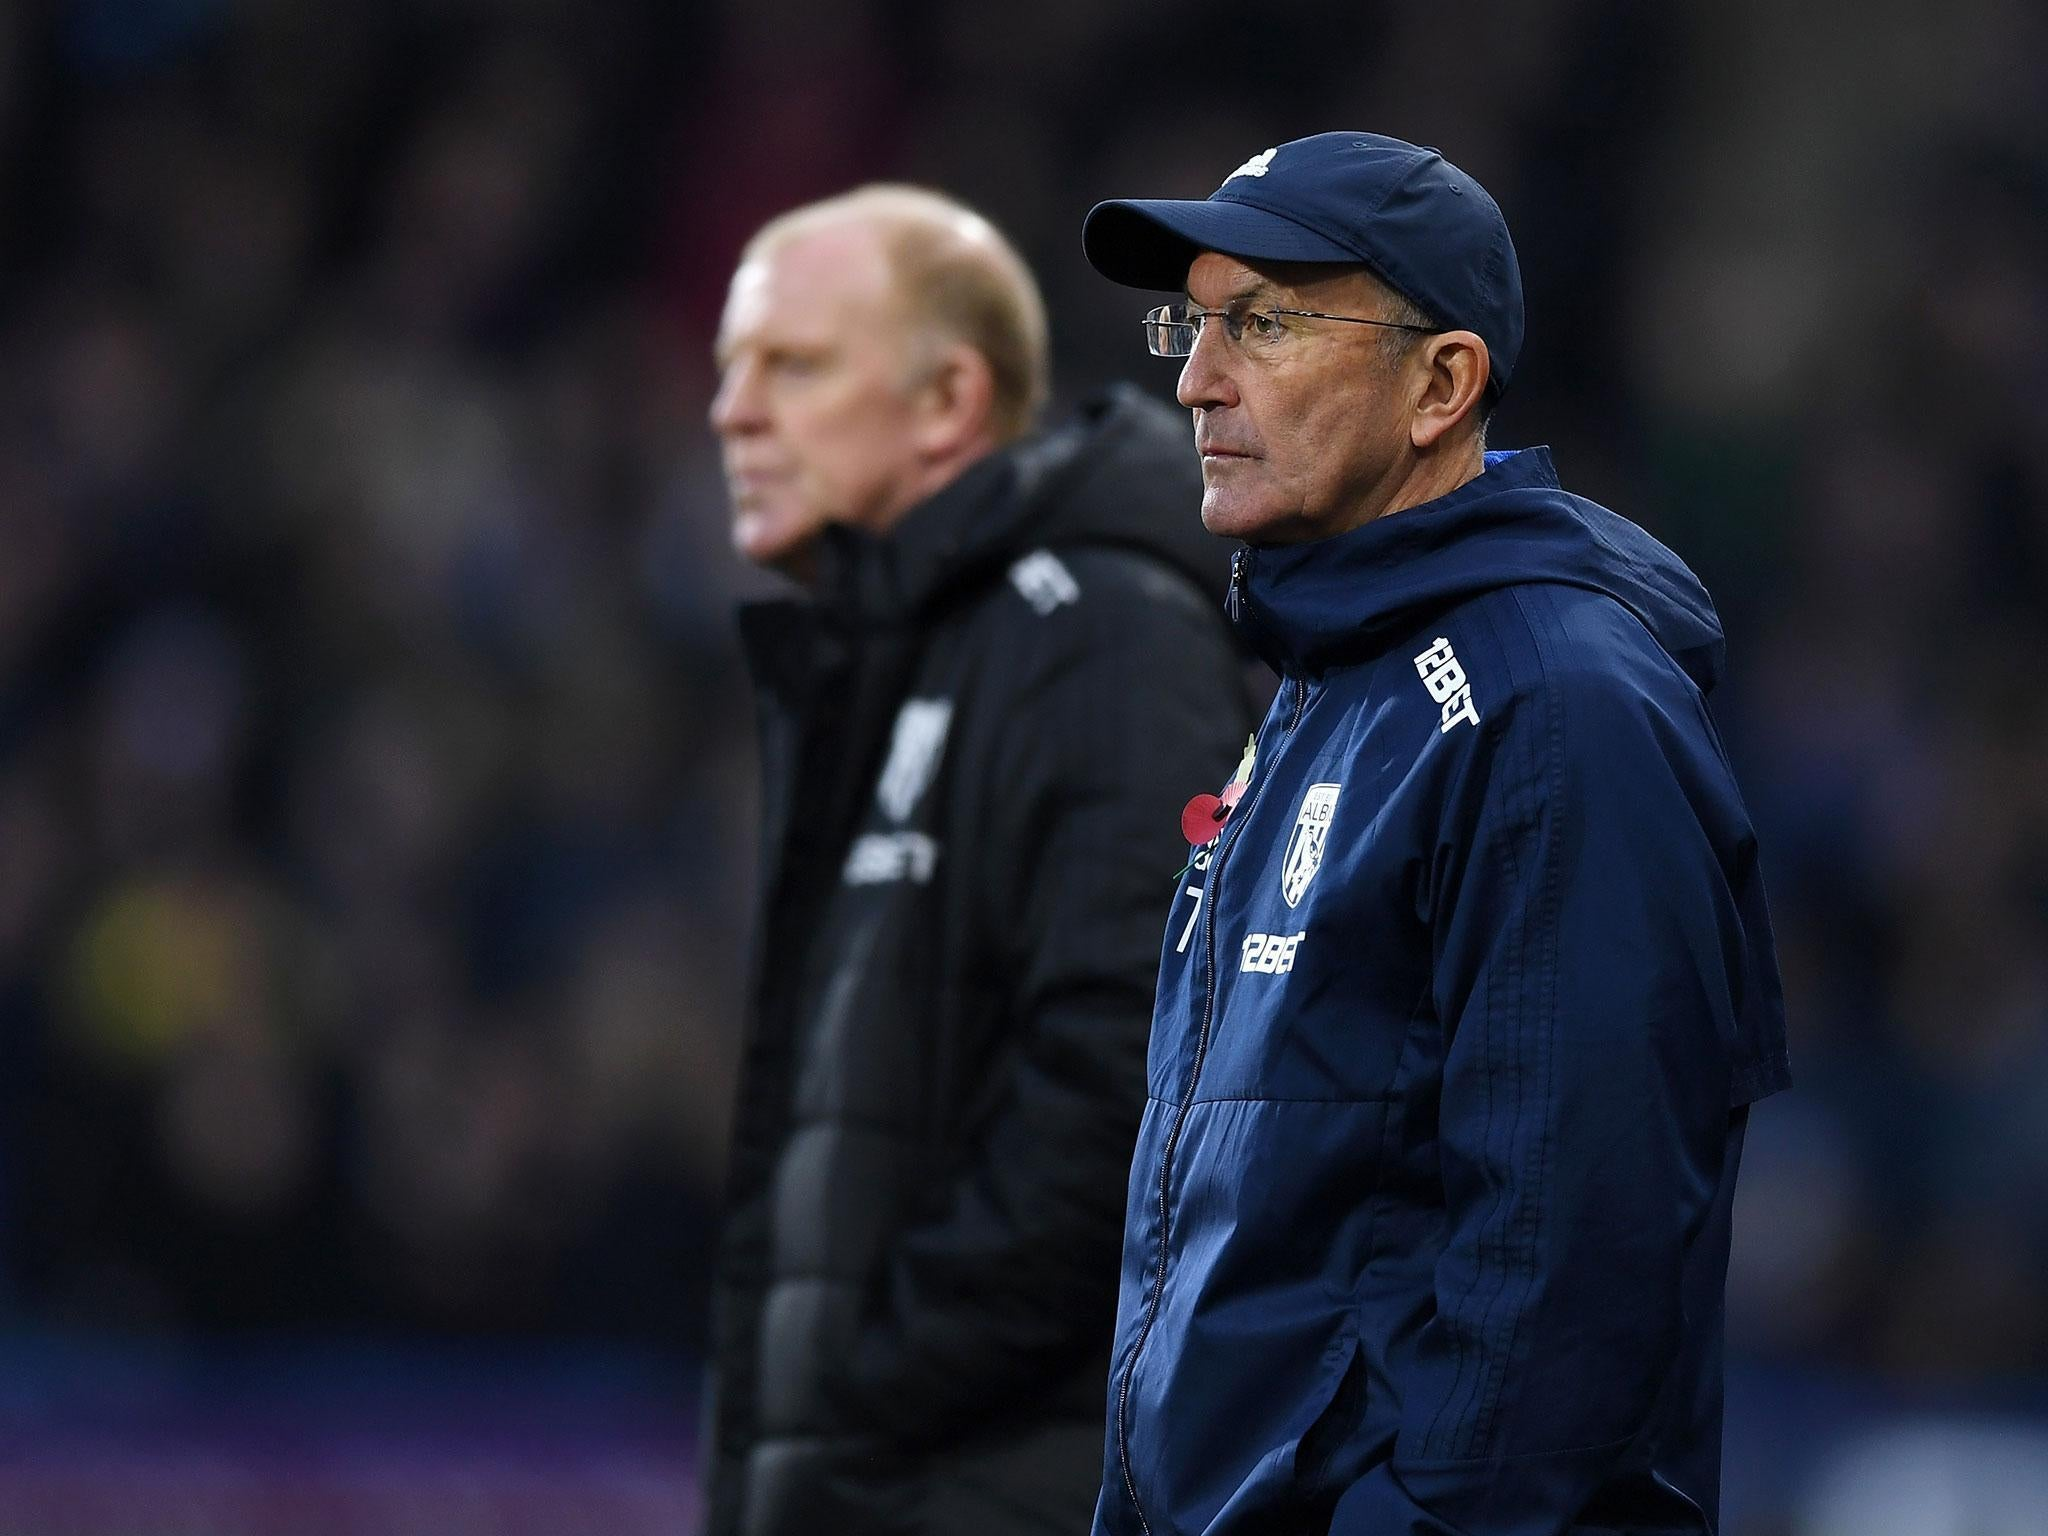 West Brom fans turn on Tony Pulis as Baggies fall to 10-man Huddersfield